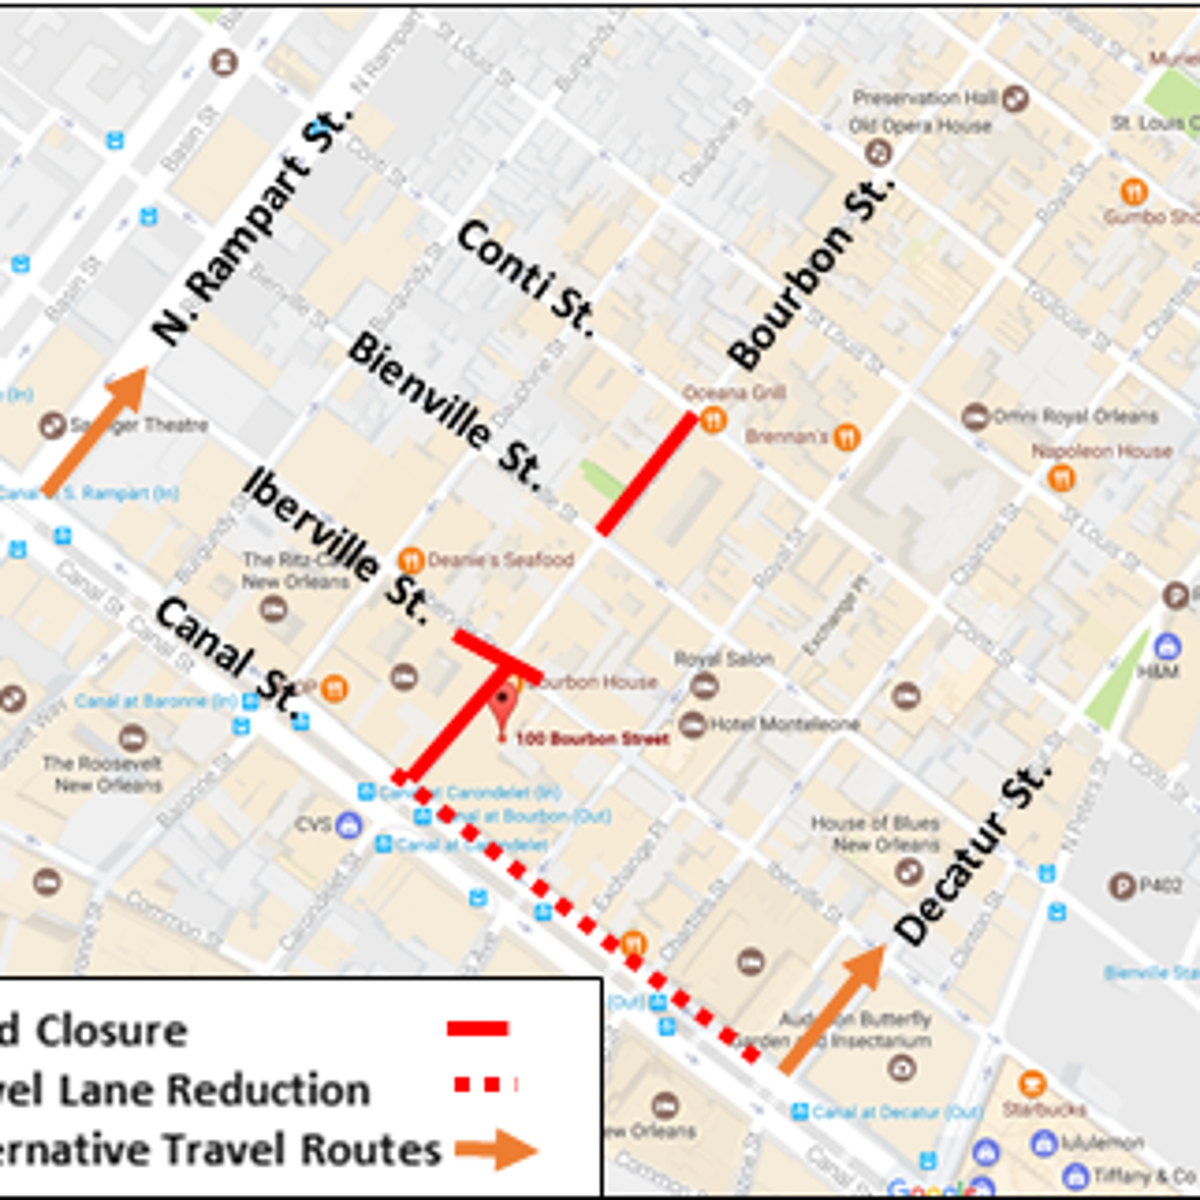 Bourbon Street New Orleans Map One street reopens, another closes for Bourbon Street repairs